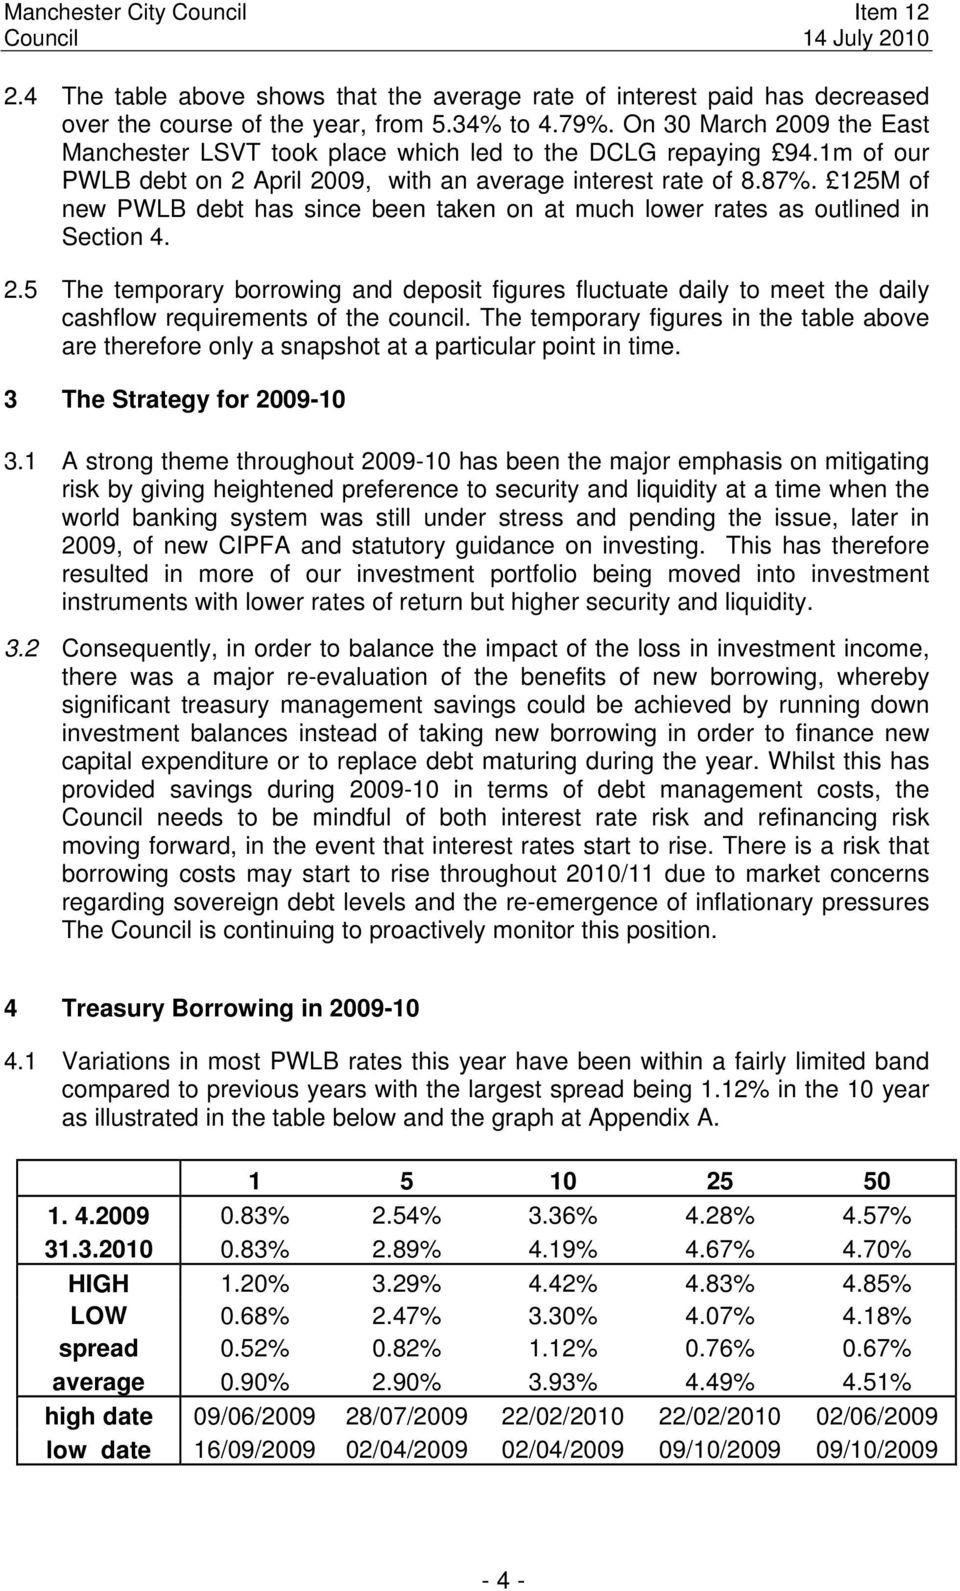 125M of new PWLB debt has since been taken on at much lower rates as outlined in Section 4. 2.